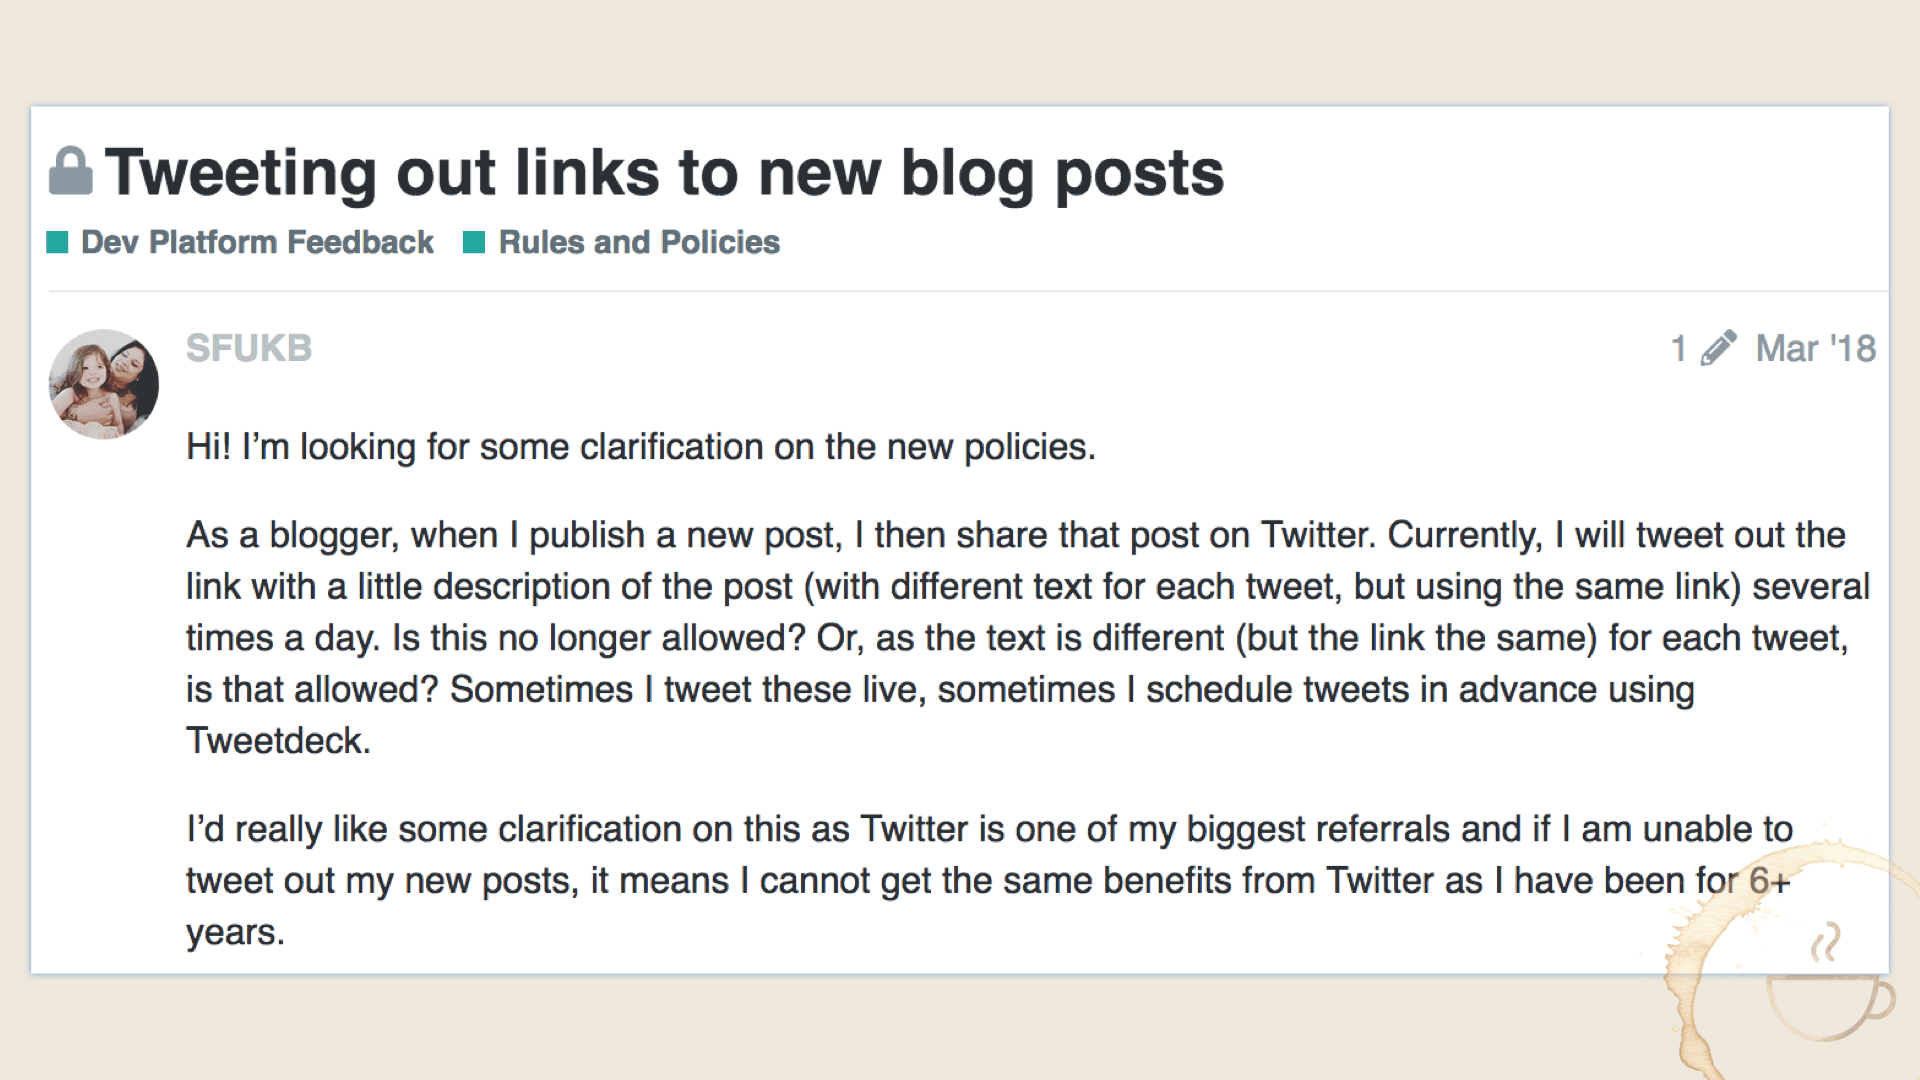 Will tweeting links to my new blog posts get my Twitter account suspended?